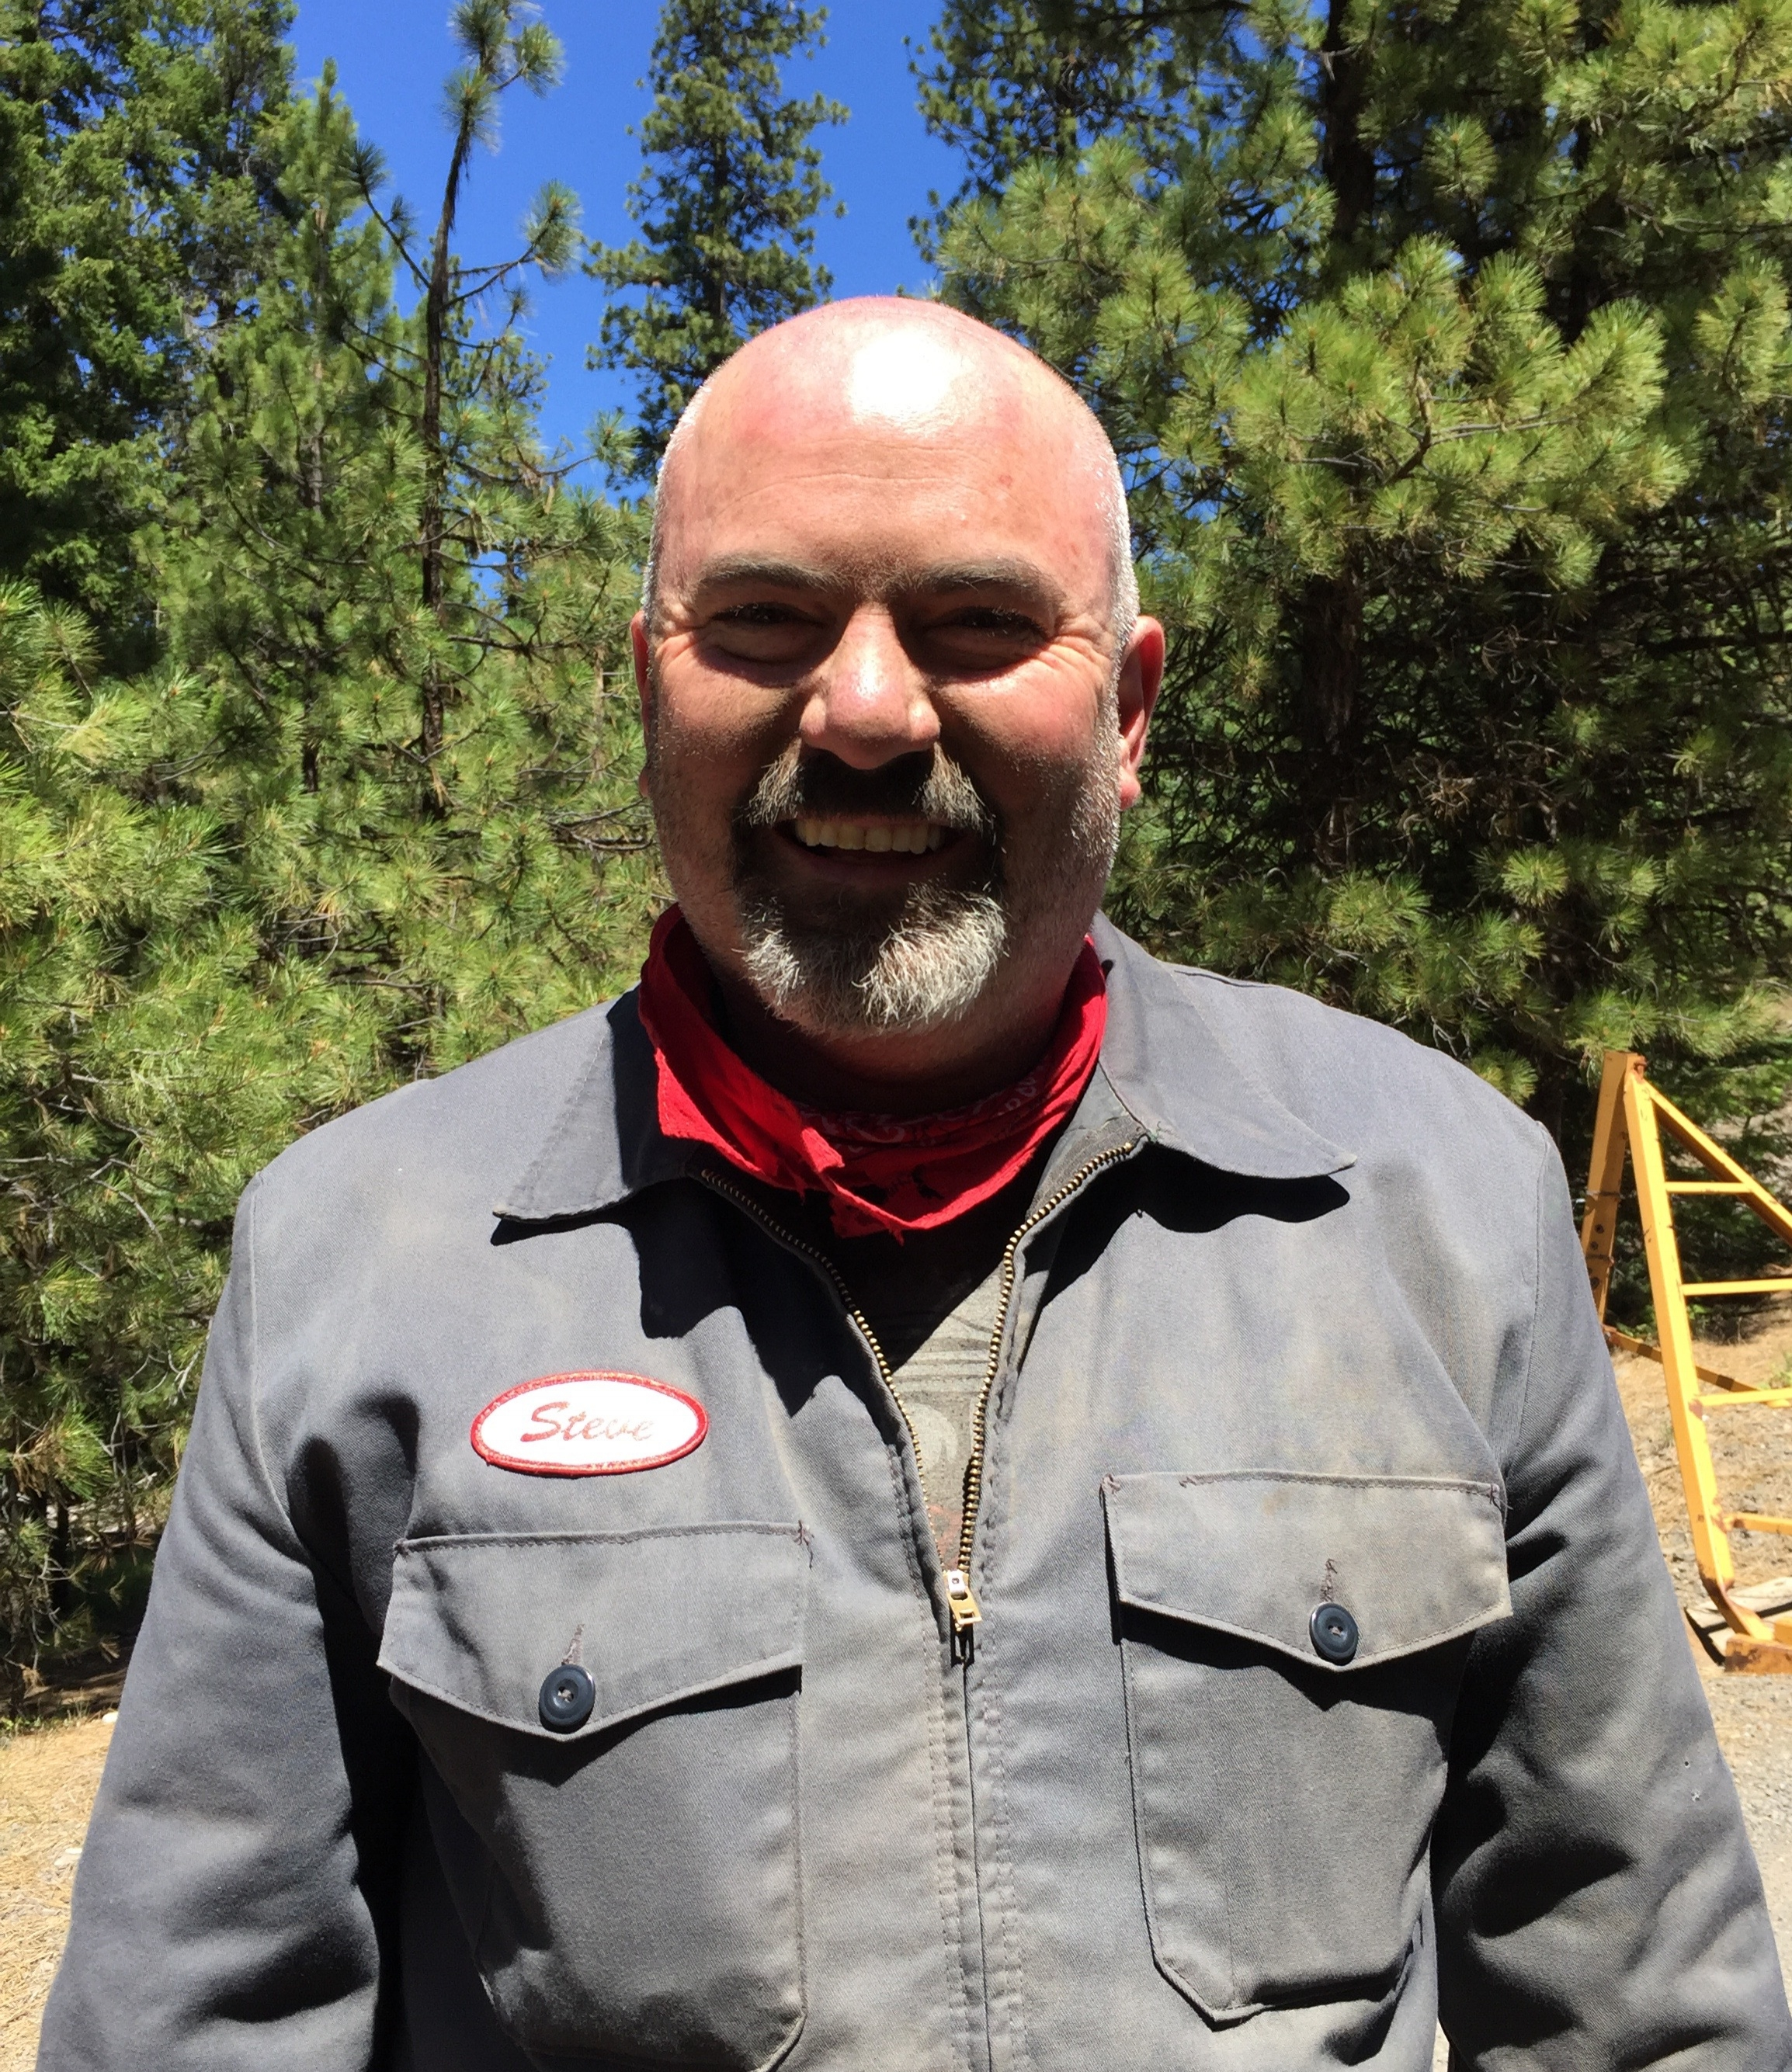 "STEVE CALLAN FOUNDING MEMBER  Born and raised in the suburban wasteland of Fremont, California, Steve Callan acquired his first motorcycle – a Sears Allstate 50cc – at the tender age of 12. Soon he was hooked on RD 400's and moved to San Francisco to hone his urban assault tactics. Even though SF is the motorcycle center of the universe, he realized cheaper living could equal more motorcycles and moved to Portland. After meeting Patrick Leyshock and Zach Hull, SFRC was born. A mechanic by trade, Callan has owned, modified, and rebuilt many bikes. His stable of mounts now includes an FZR100, T500 Titan and a RMX250 for the dirty work. Riding and racing motorcycles is his first love when he's not chomping on tasty ham hocks. Callan says, ""Come ride with us and try to keep up!"""